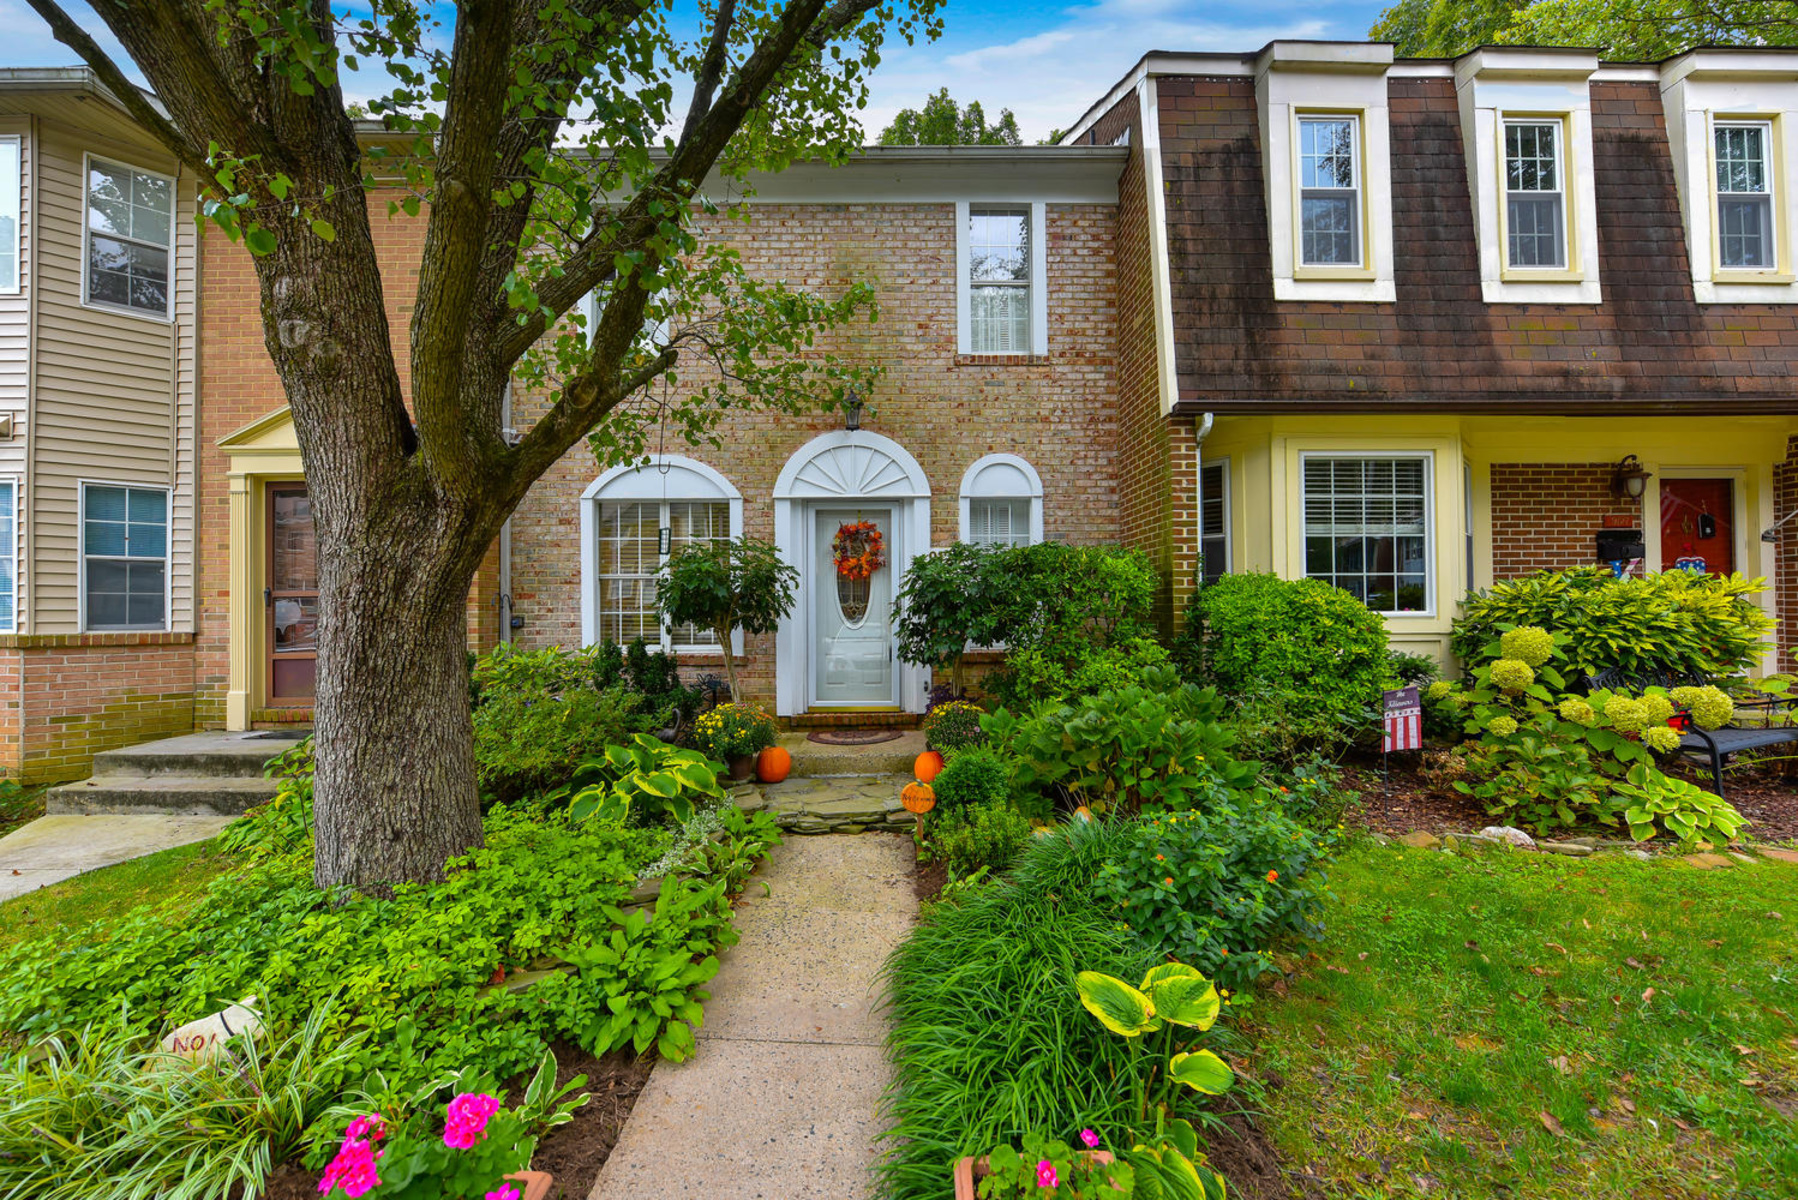 Townhouse for Sale at Glenwood Manor 9125 Galbreth Ct Springfield, Virginia 22153 United States